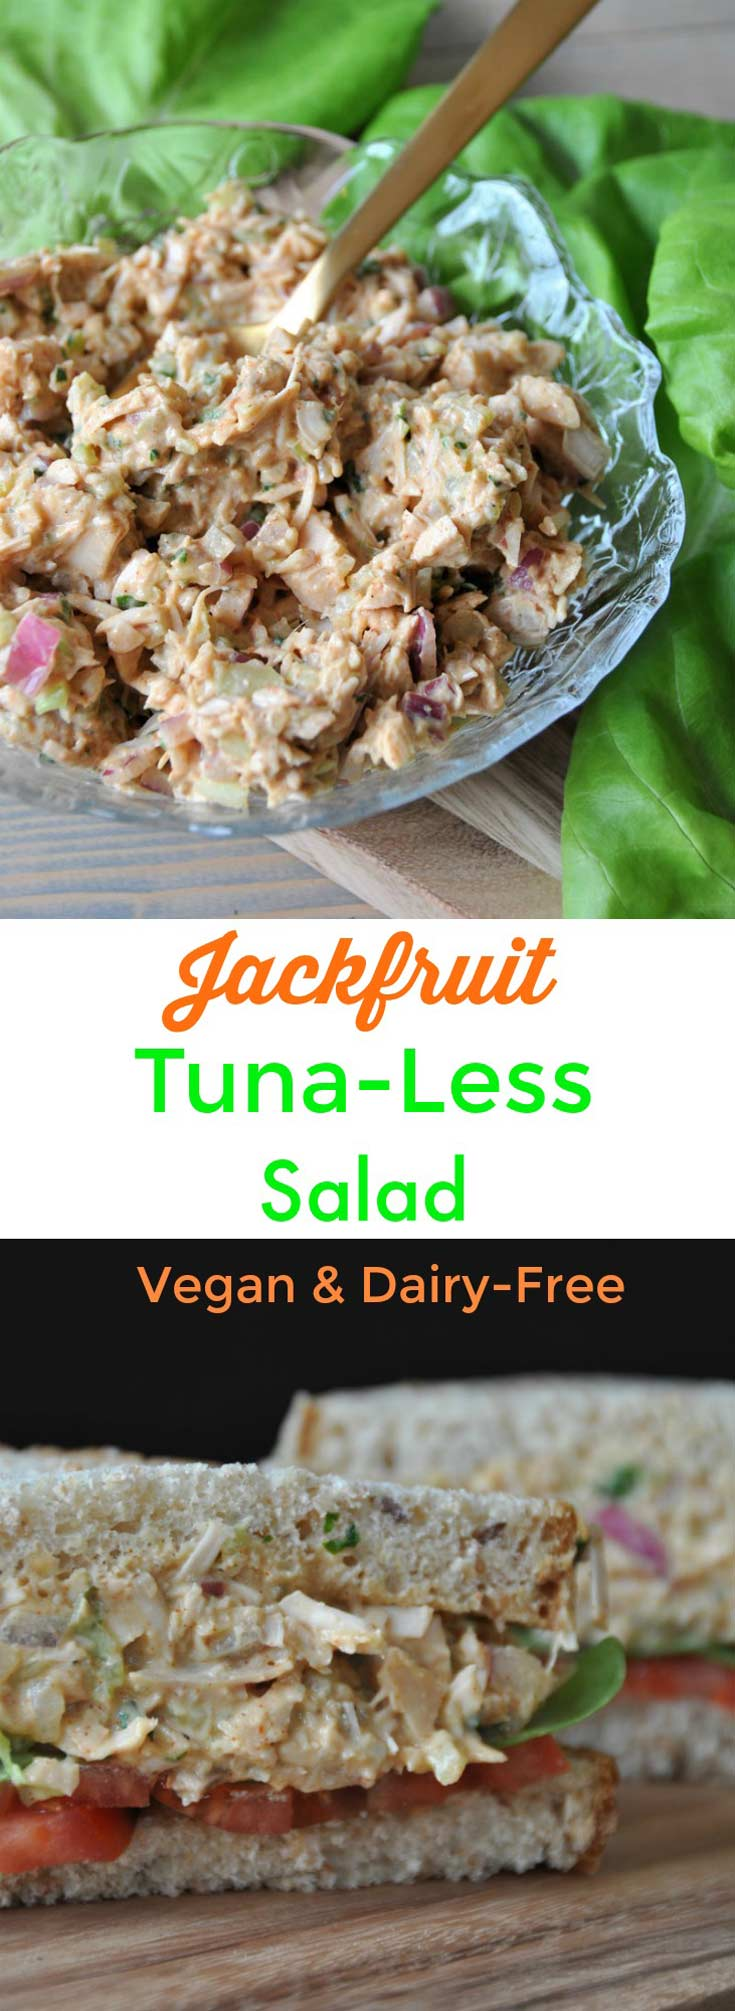 The texture of jackfruit is so much like tuna. This vegan